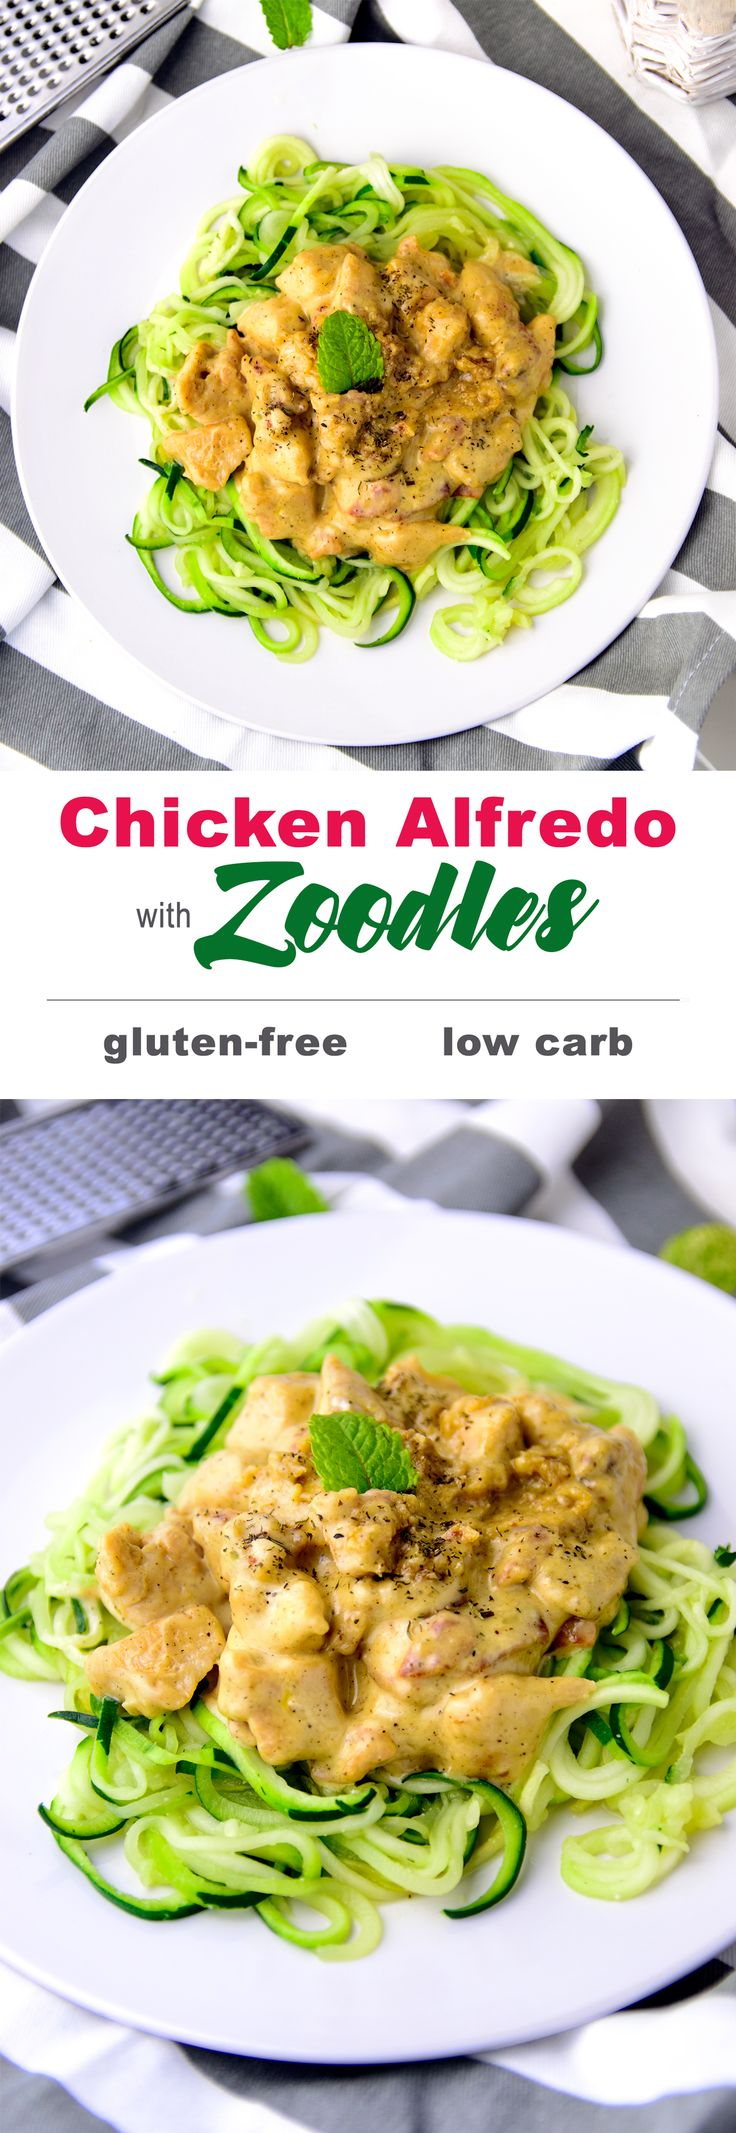 Creamy parmesan bacon and chicken Alfredo with zucchini noodles, a skinny, tasty and healthy dinner made in 30 minutes {#glutenfree, #lowcarb, #cleaneating}